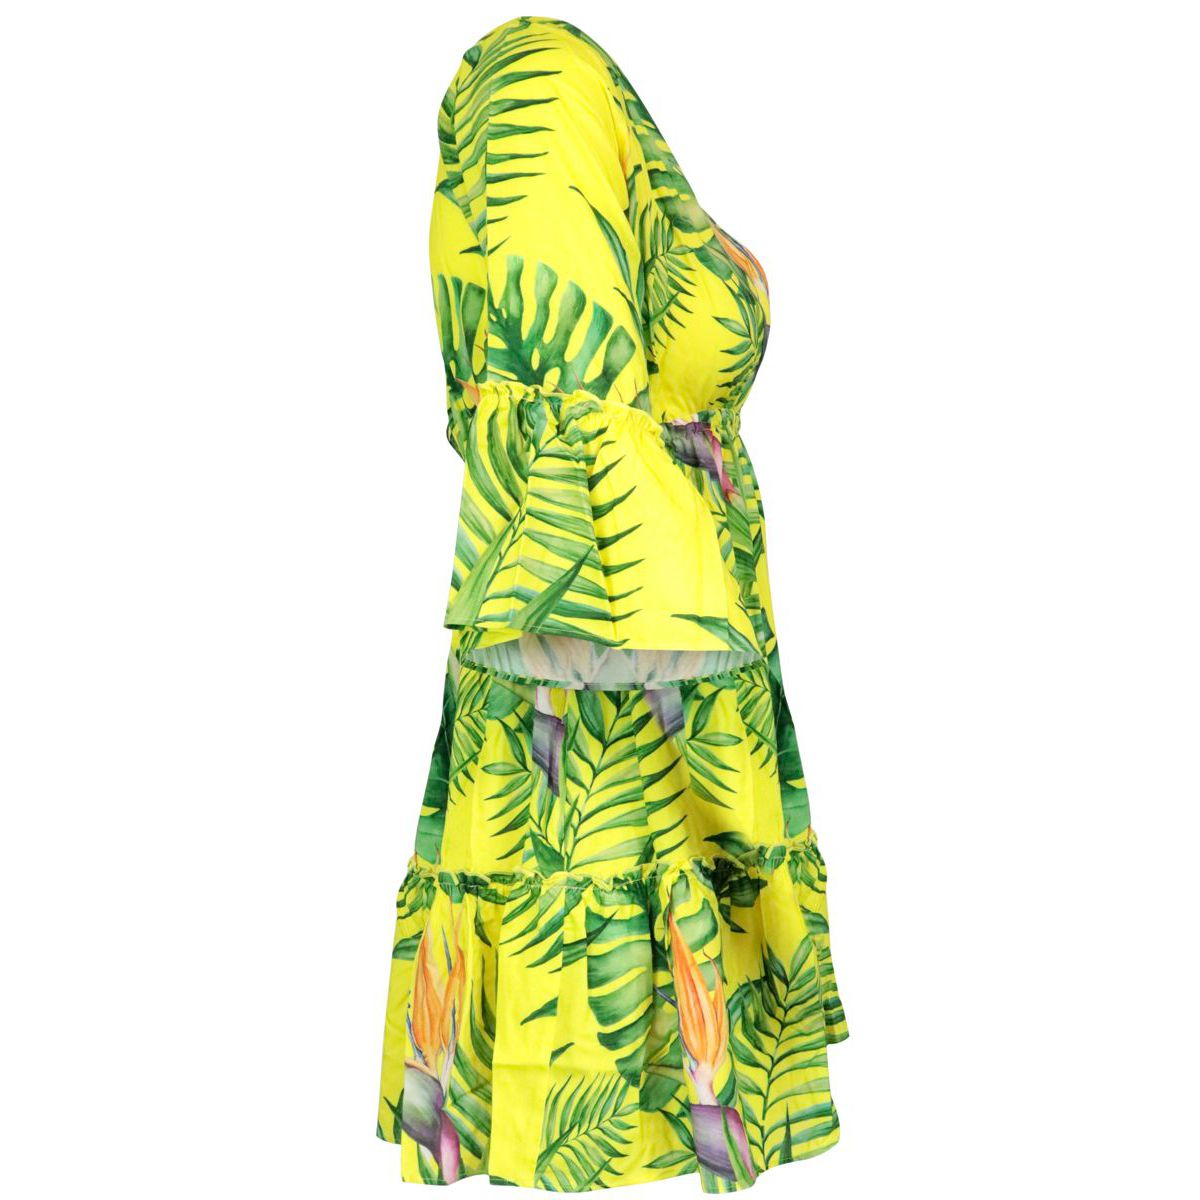 Short patterned viscose dress Yellow green MC2 Saint Barth